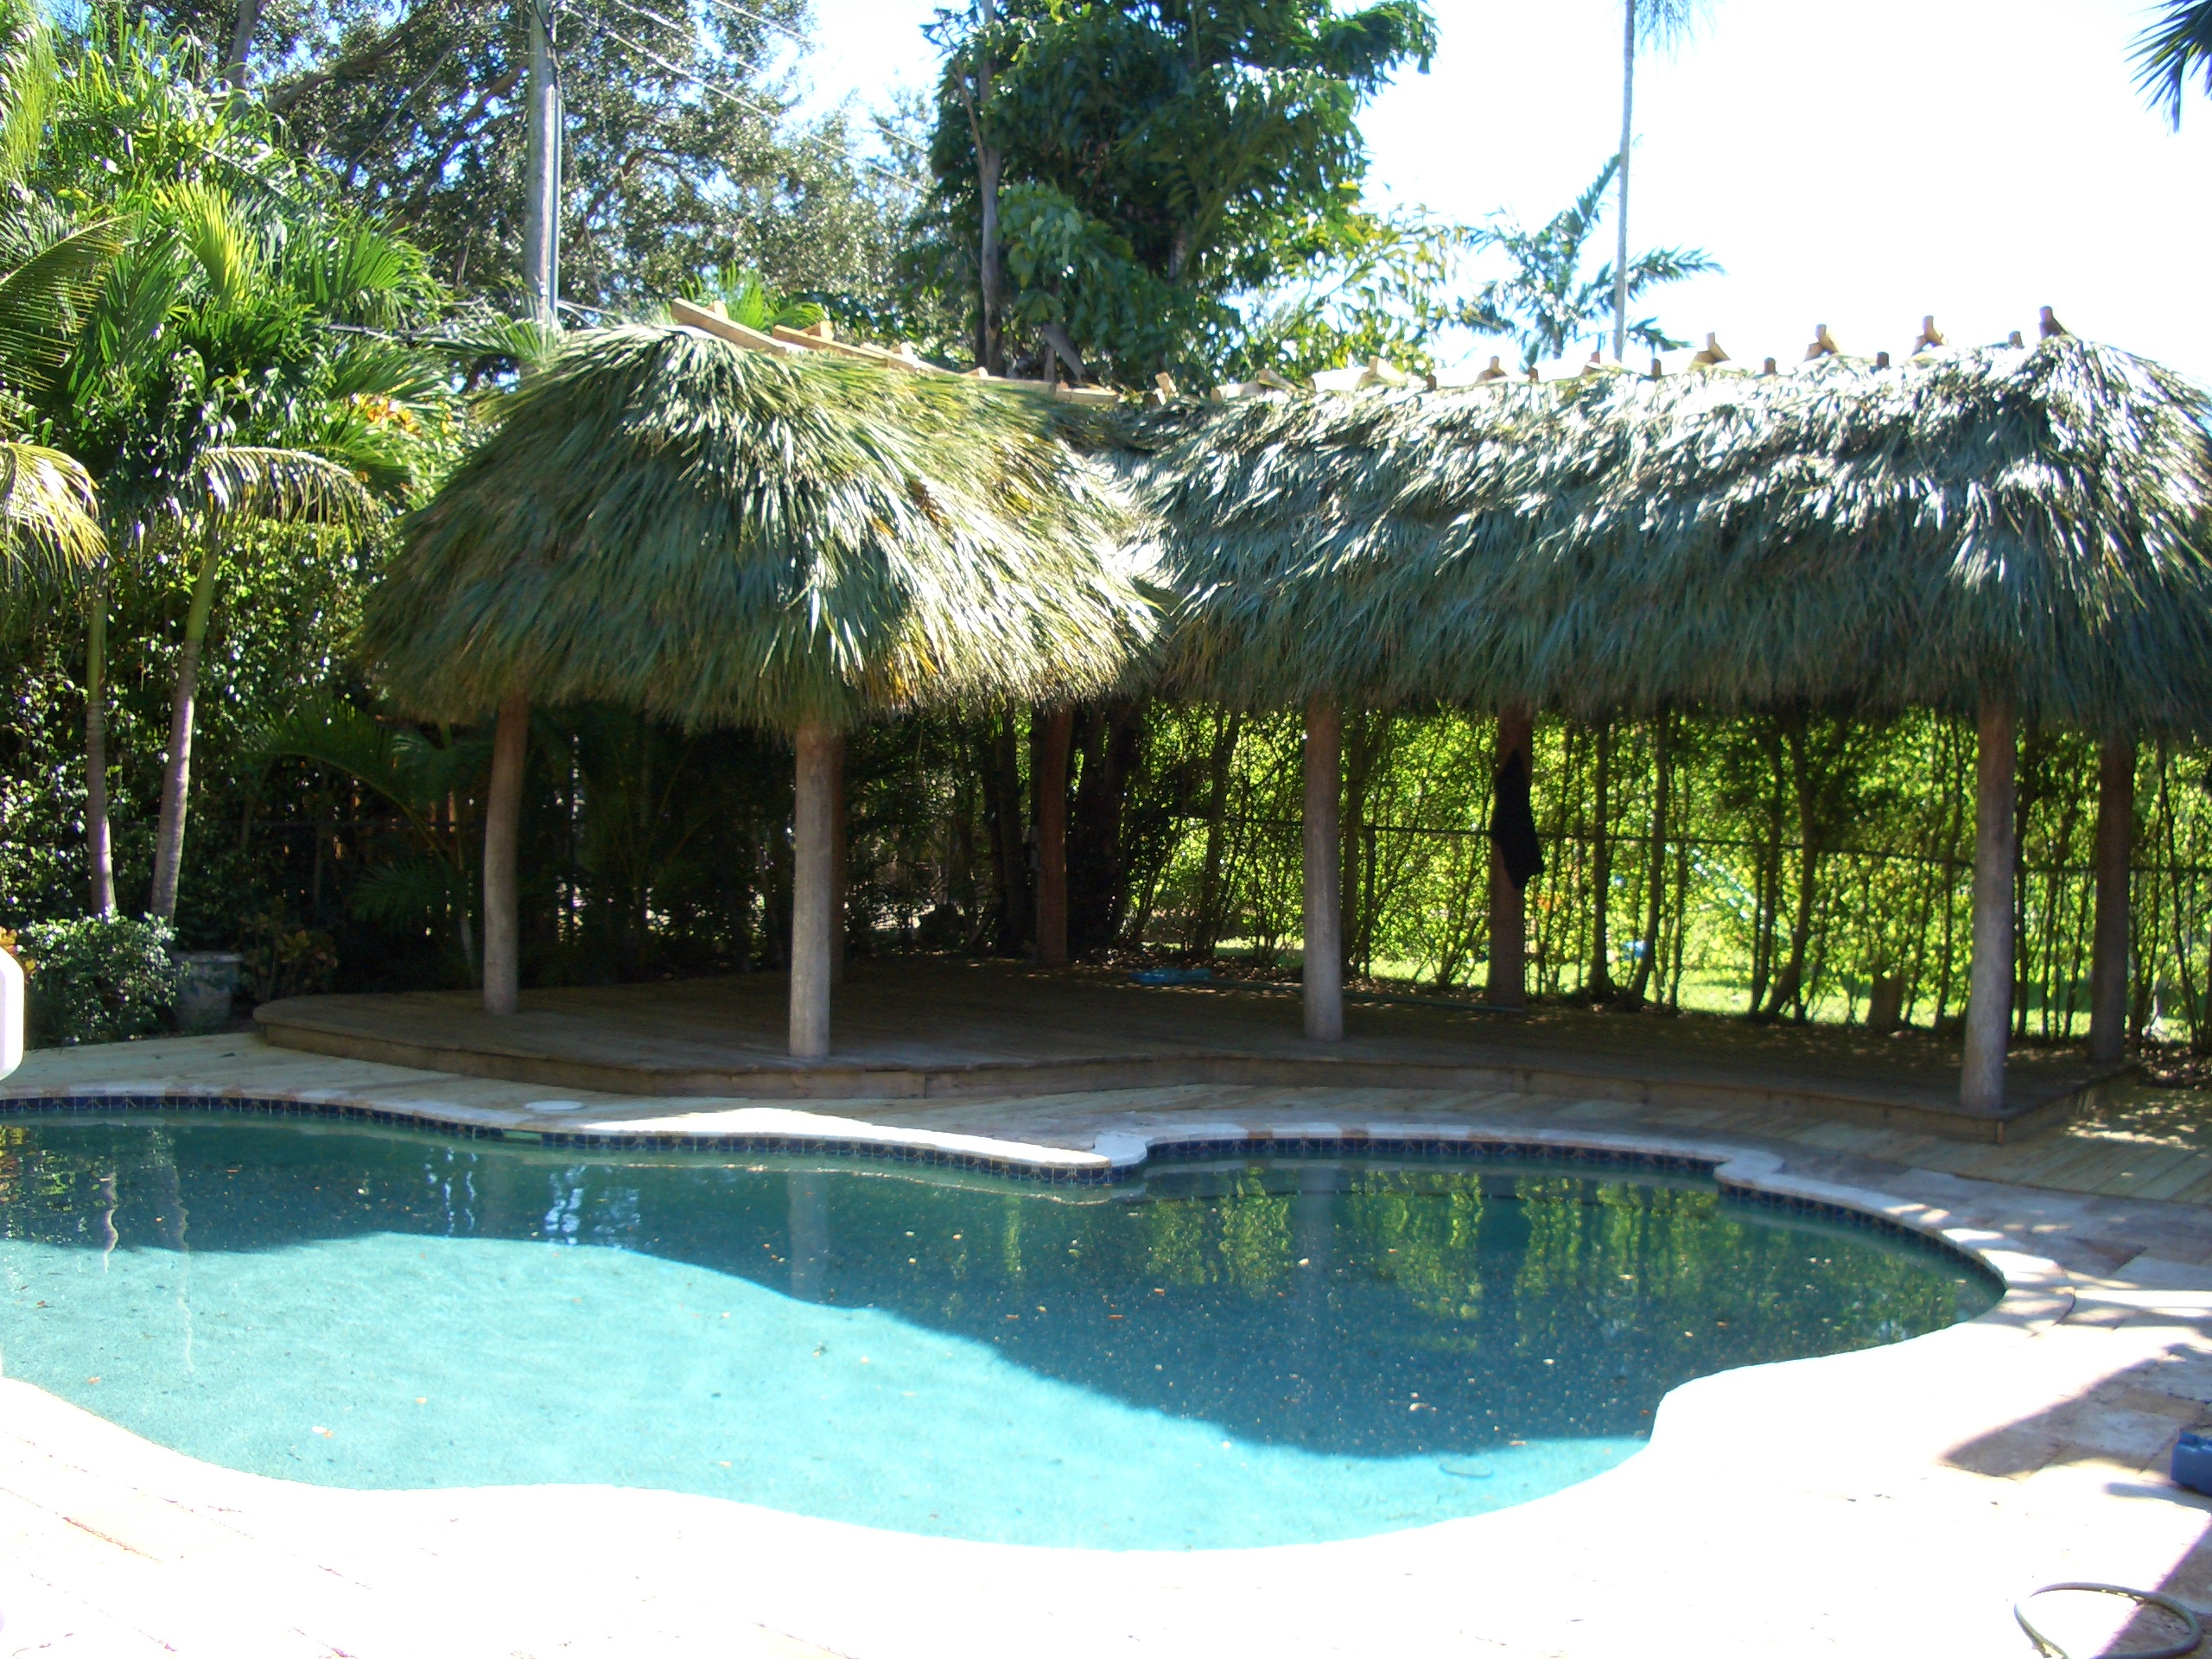 tiki hut by the pool